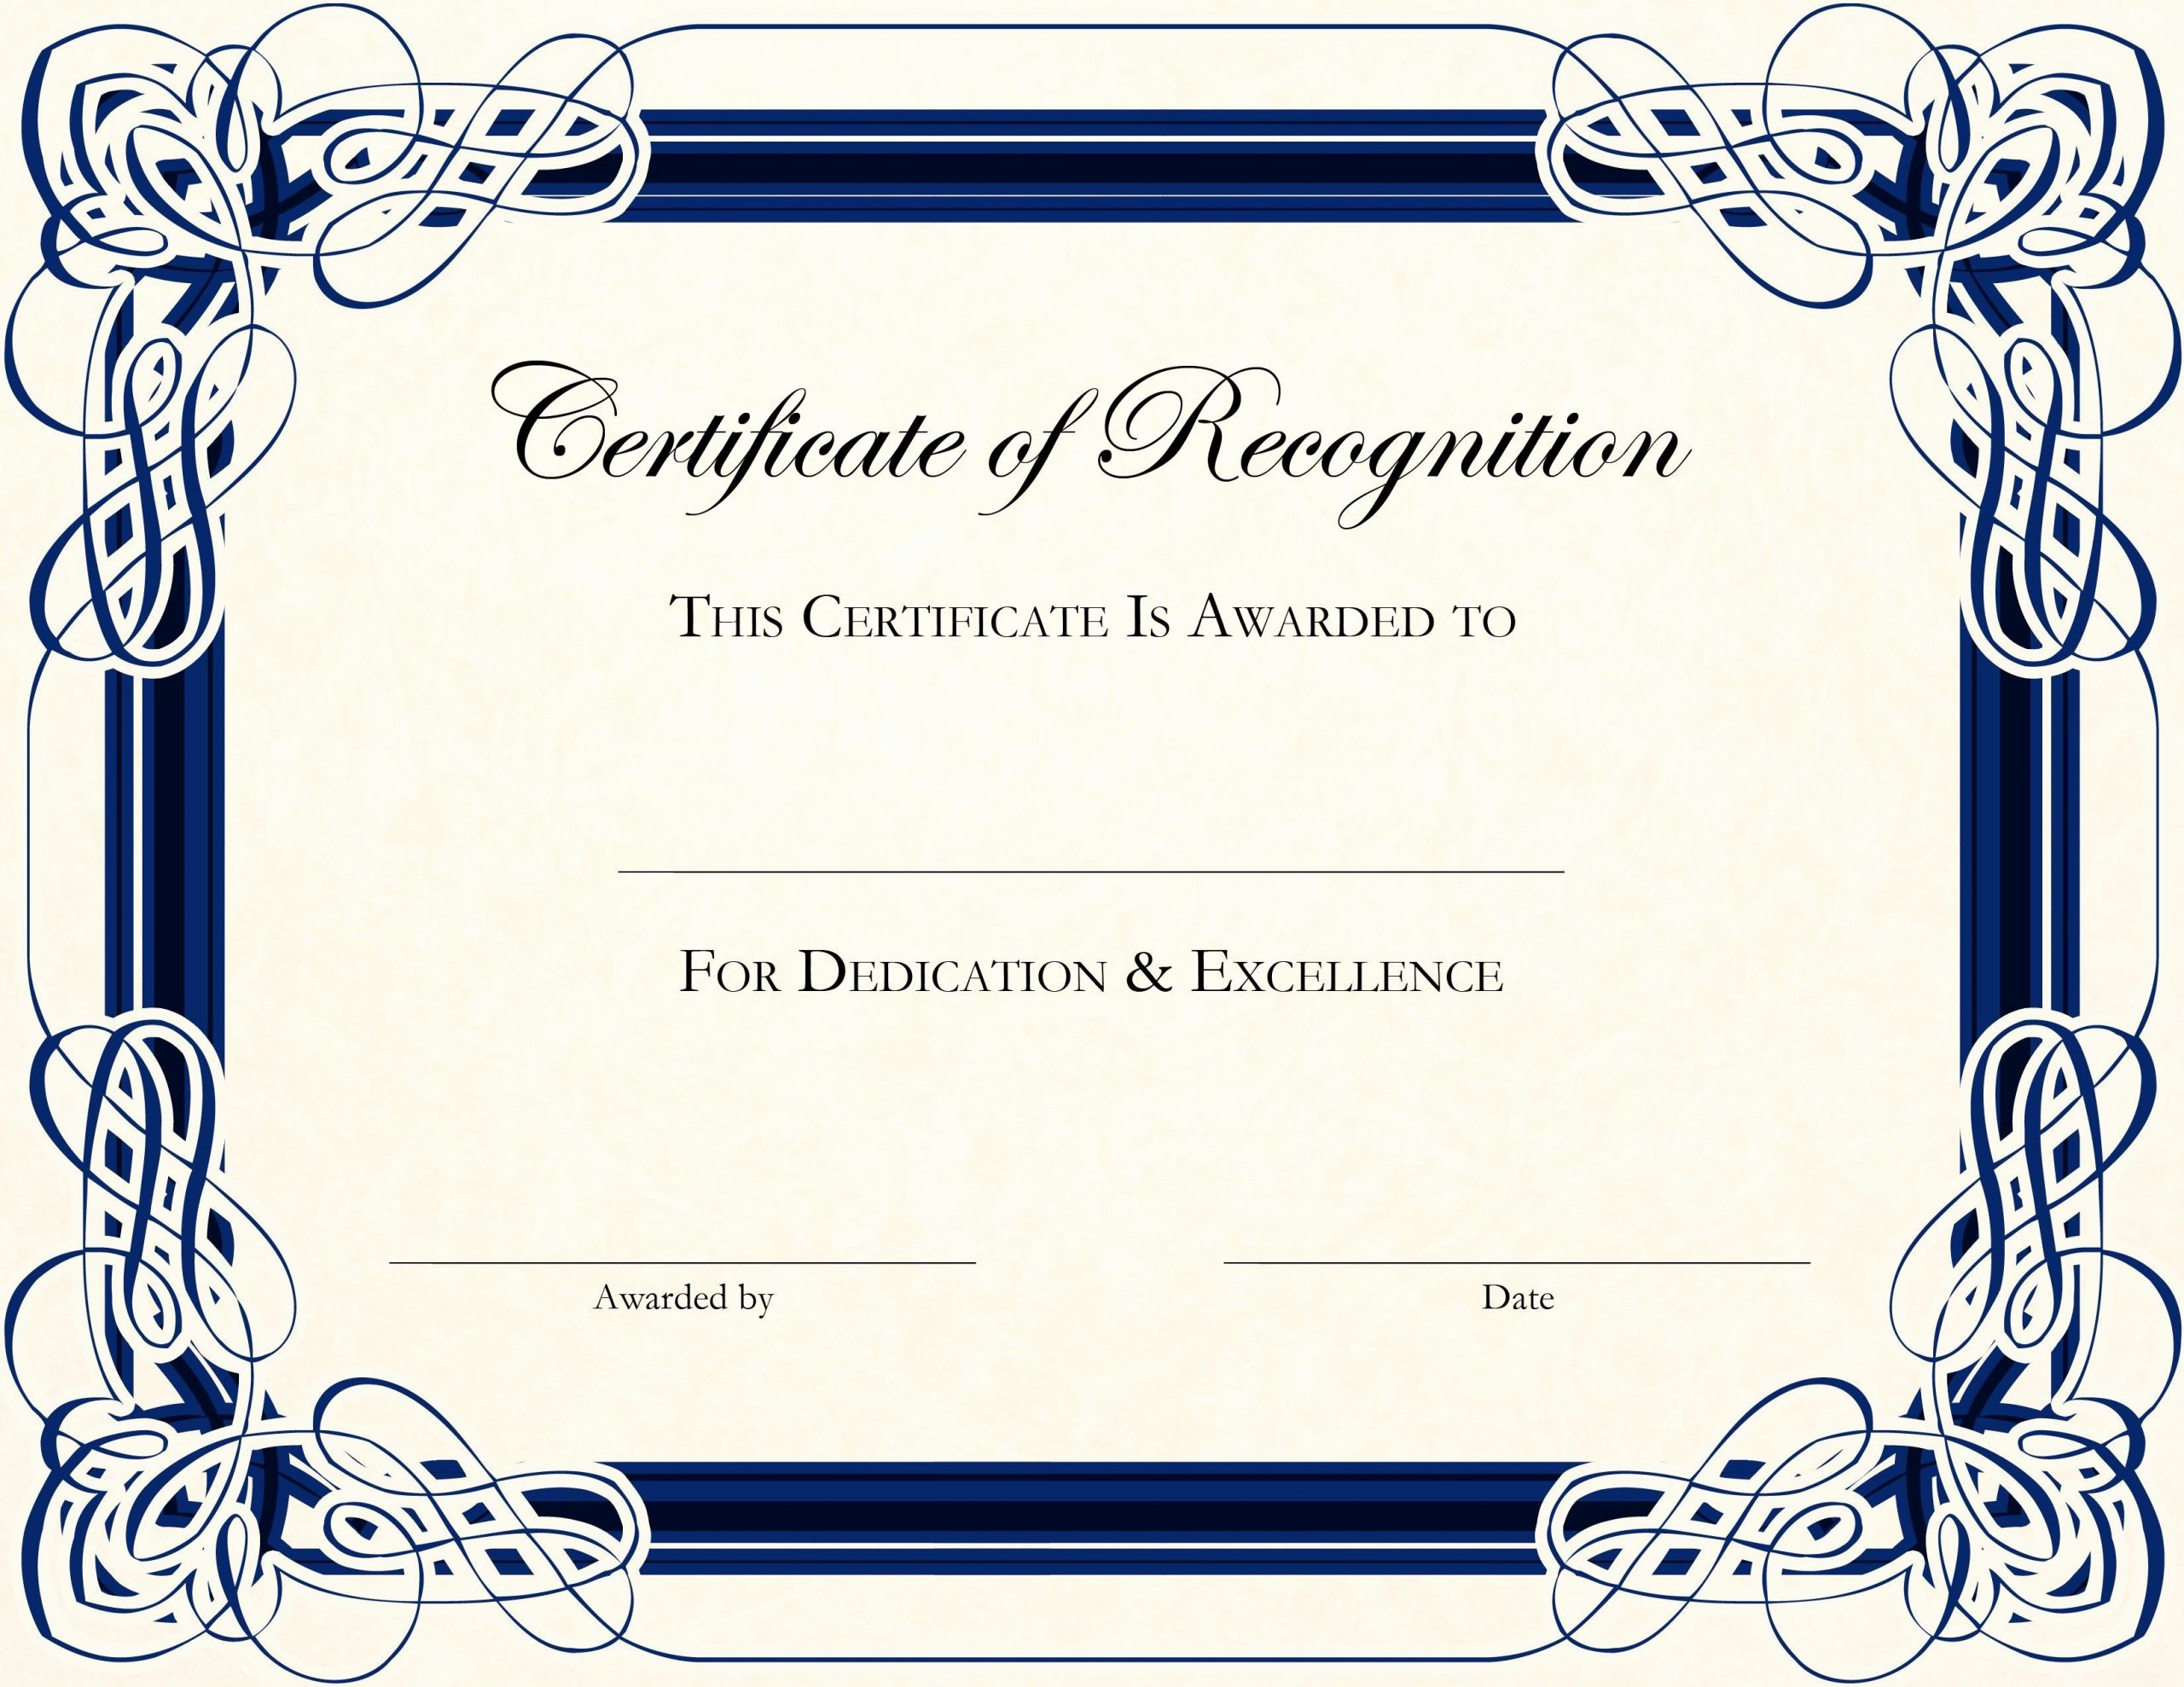 Share Certificate Template Free Download Best Of Stock Certificate Template Free Download